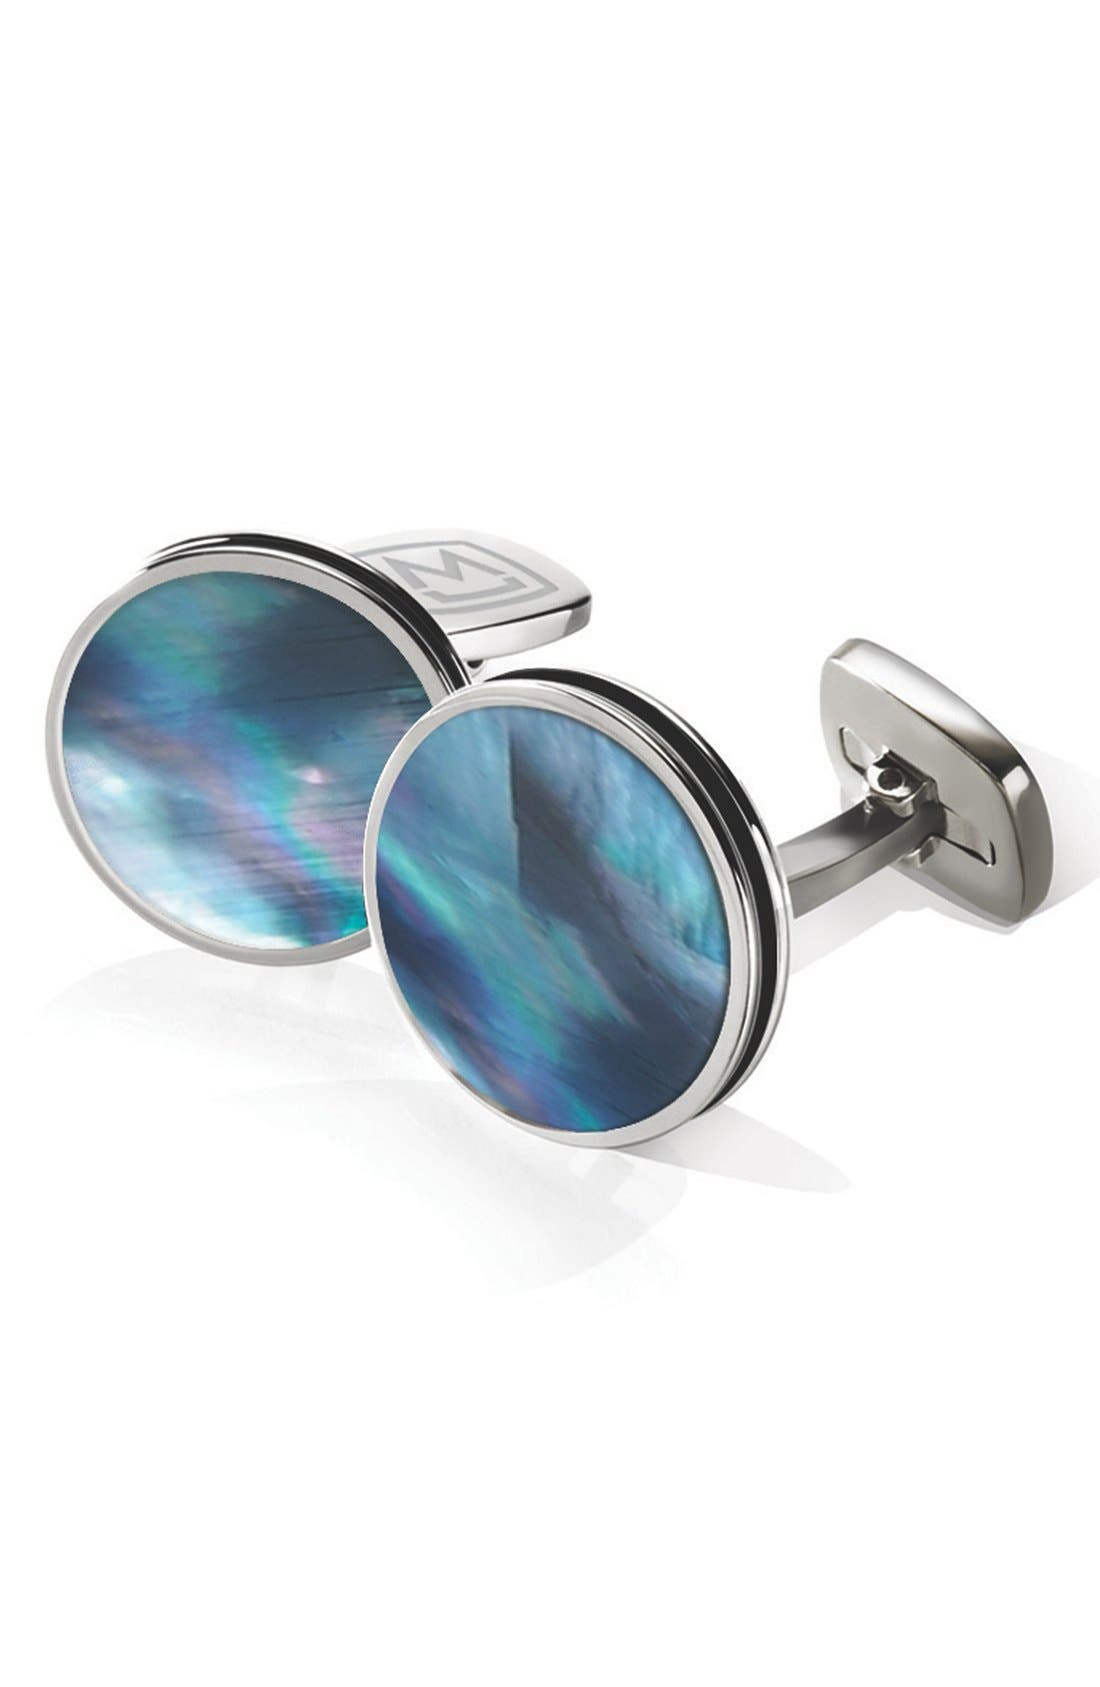 Stainless Steel Cuff Links,                         Main,                         color, Stainless Steel/ Pearl